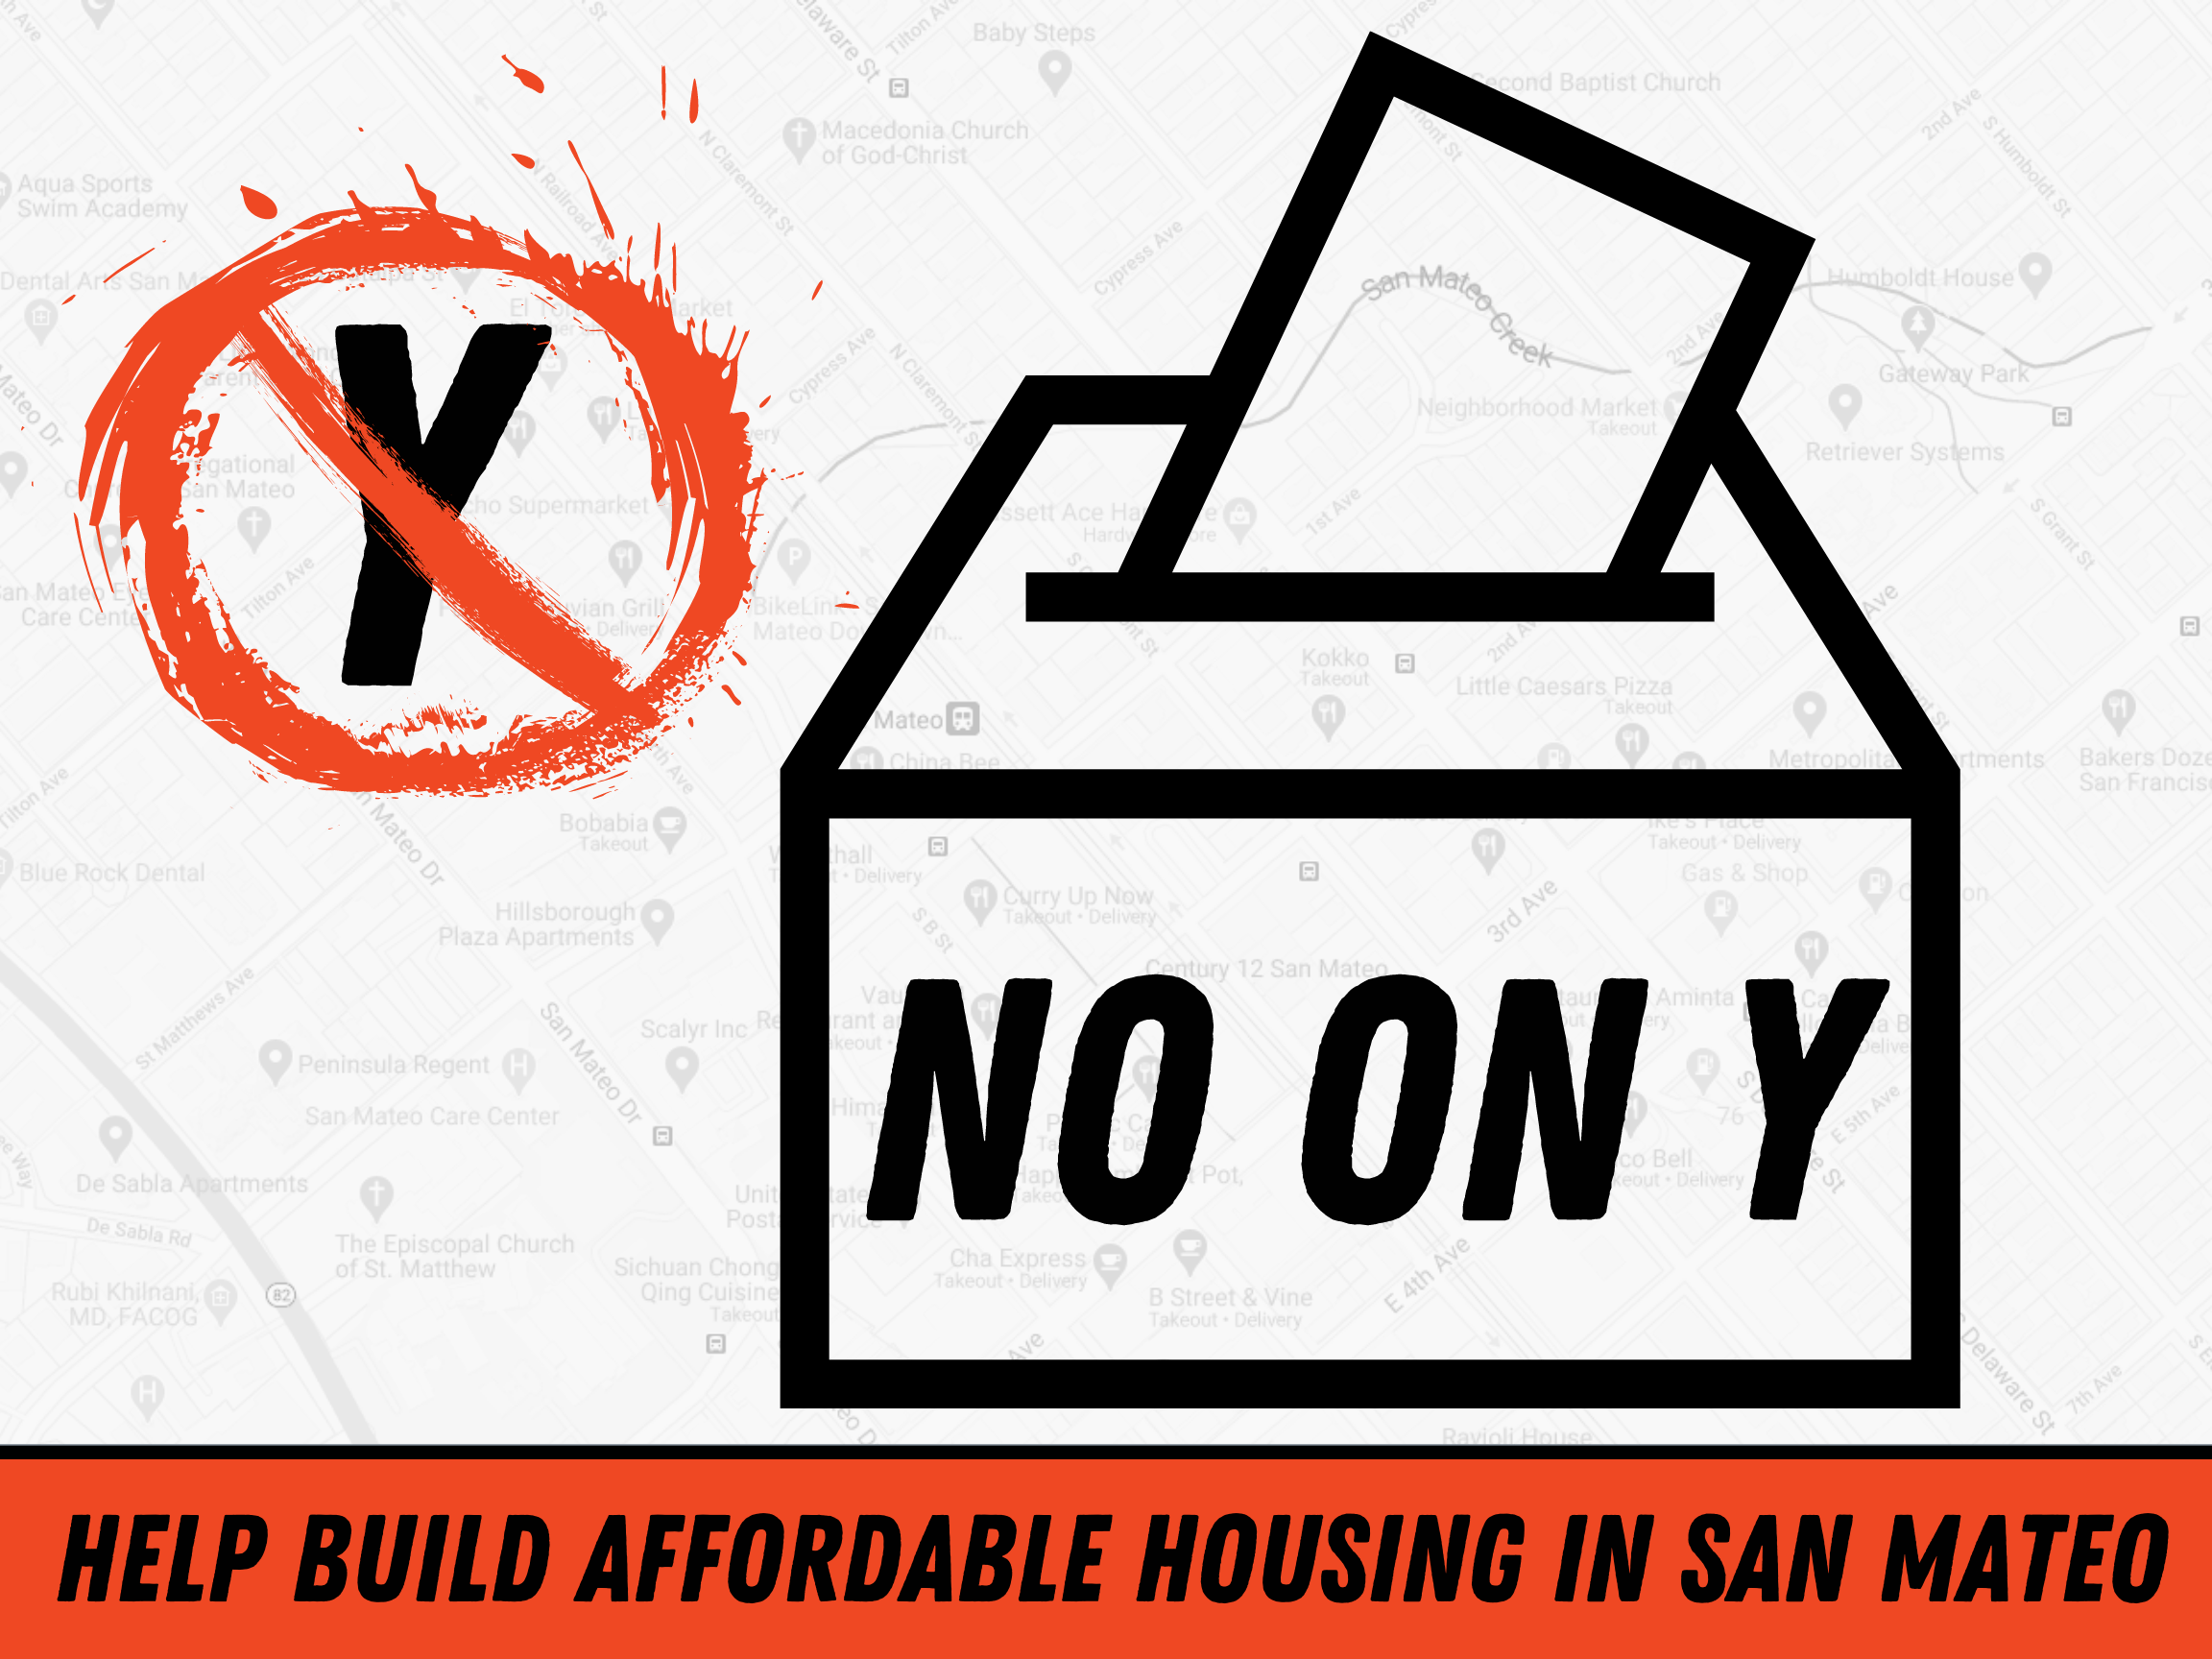 build affordable housing in san mateo 2020